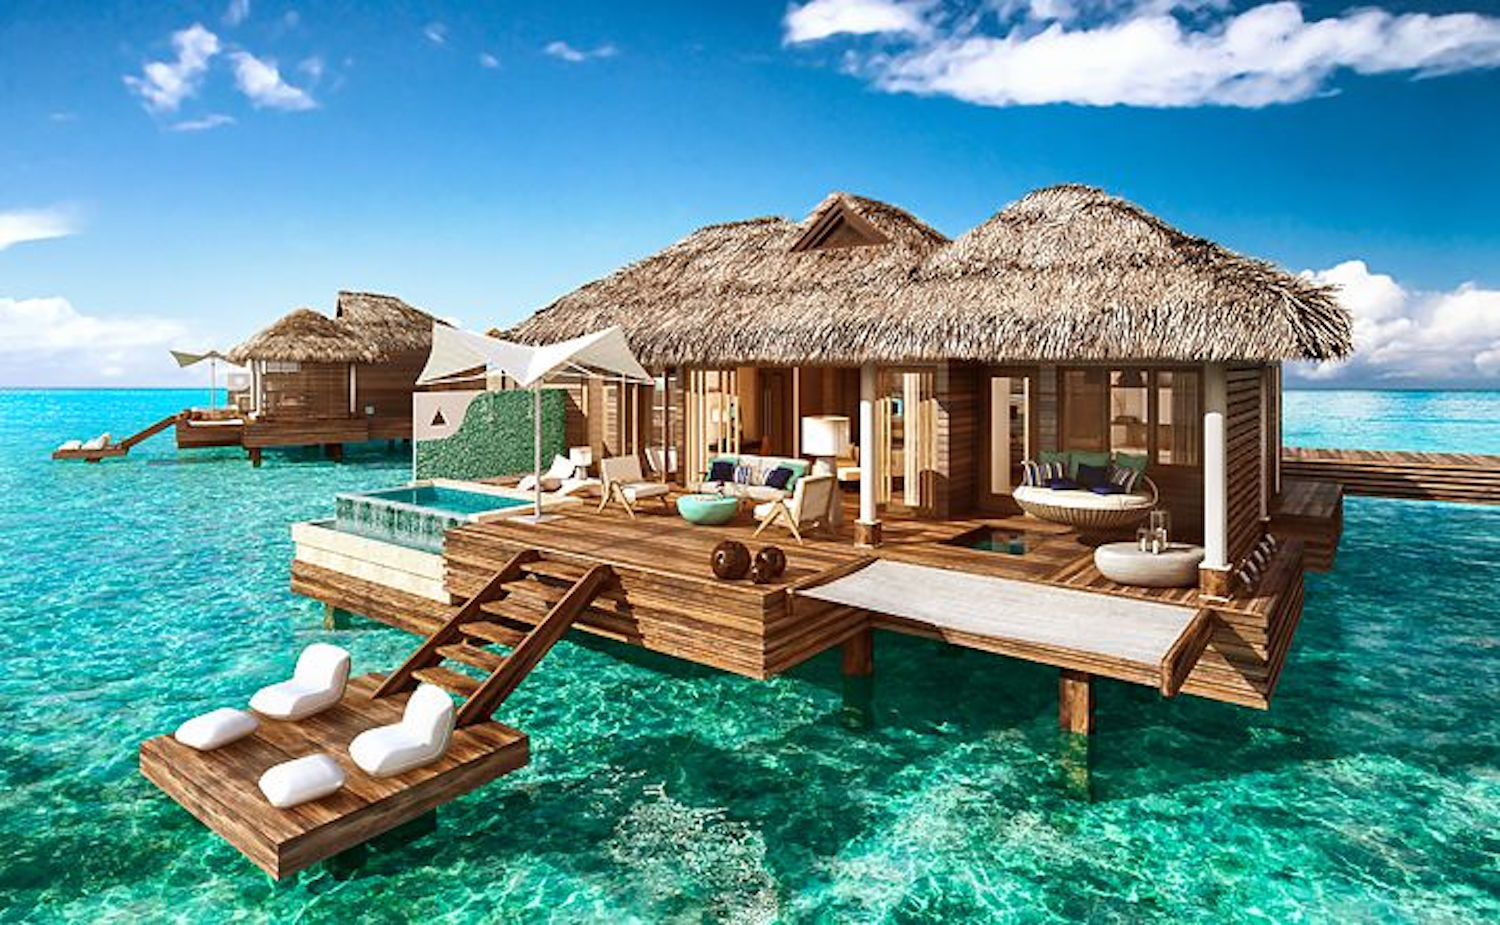 World's Best Overwater Bungalows | Diaries of Wanderlust